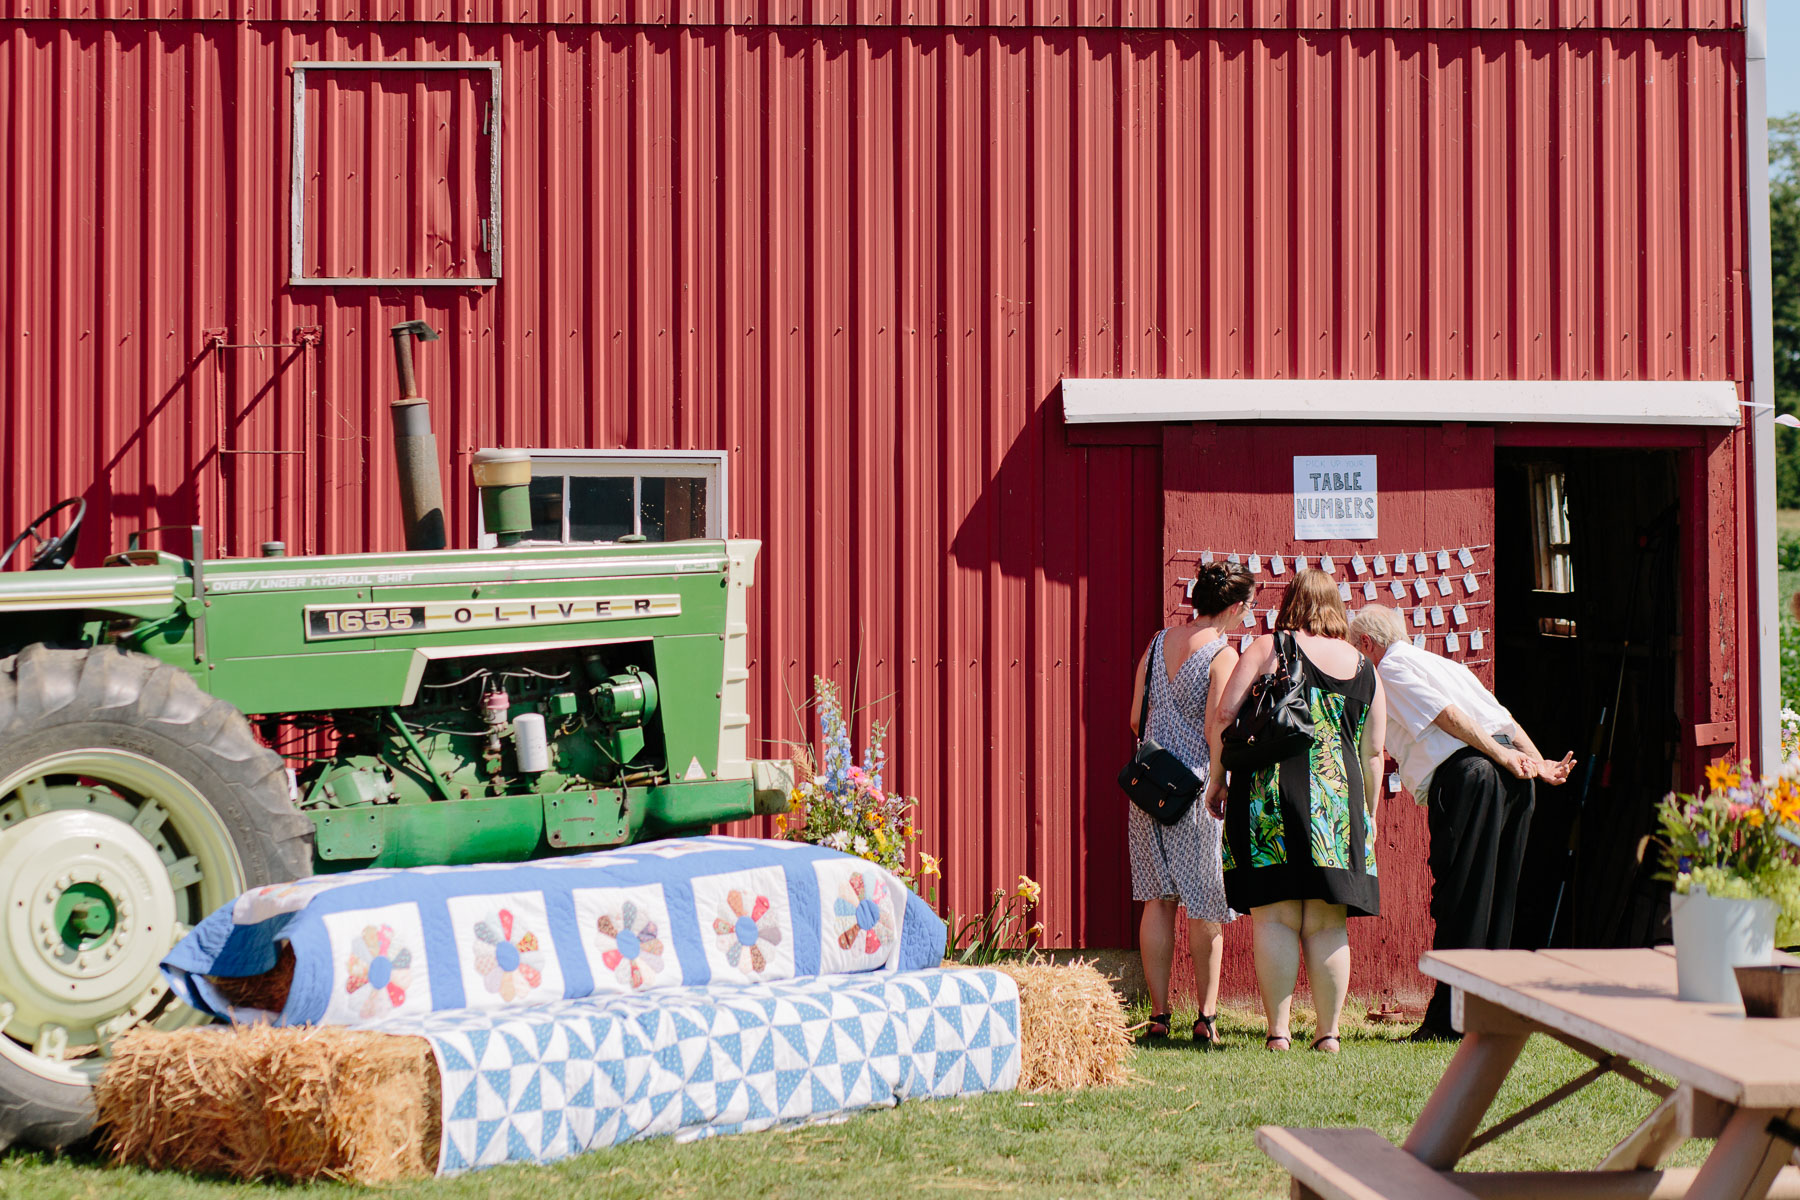 Guests checking their table numbers on side of barn with old 1655 Oliver Tractor in foreground at a rustic farm wedding.